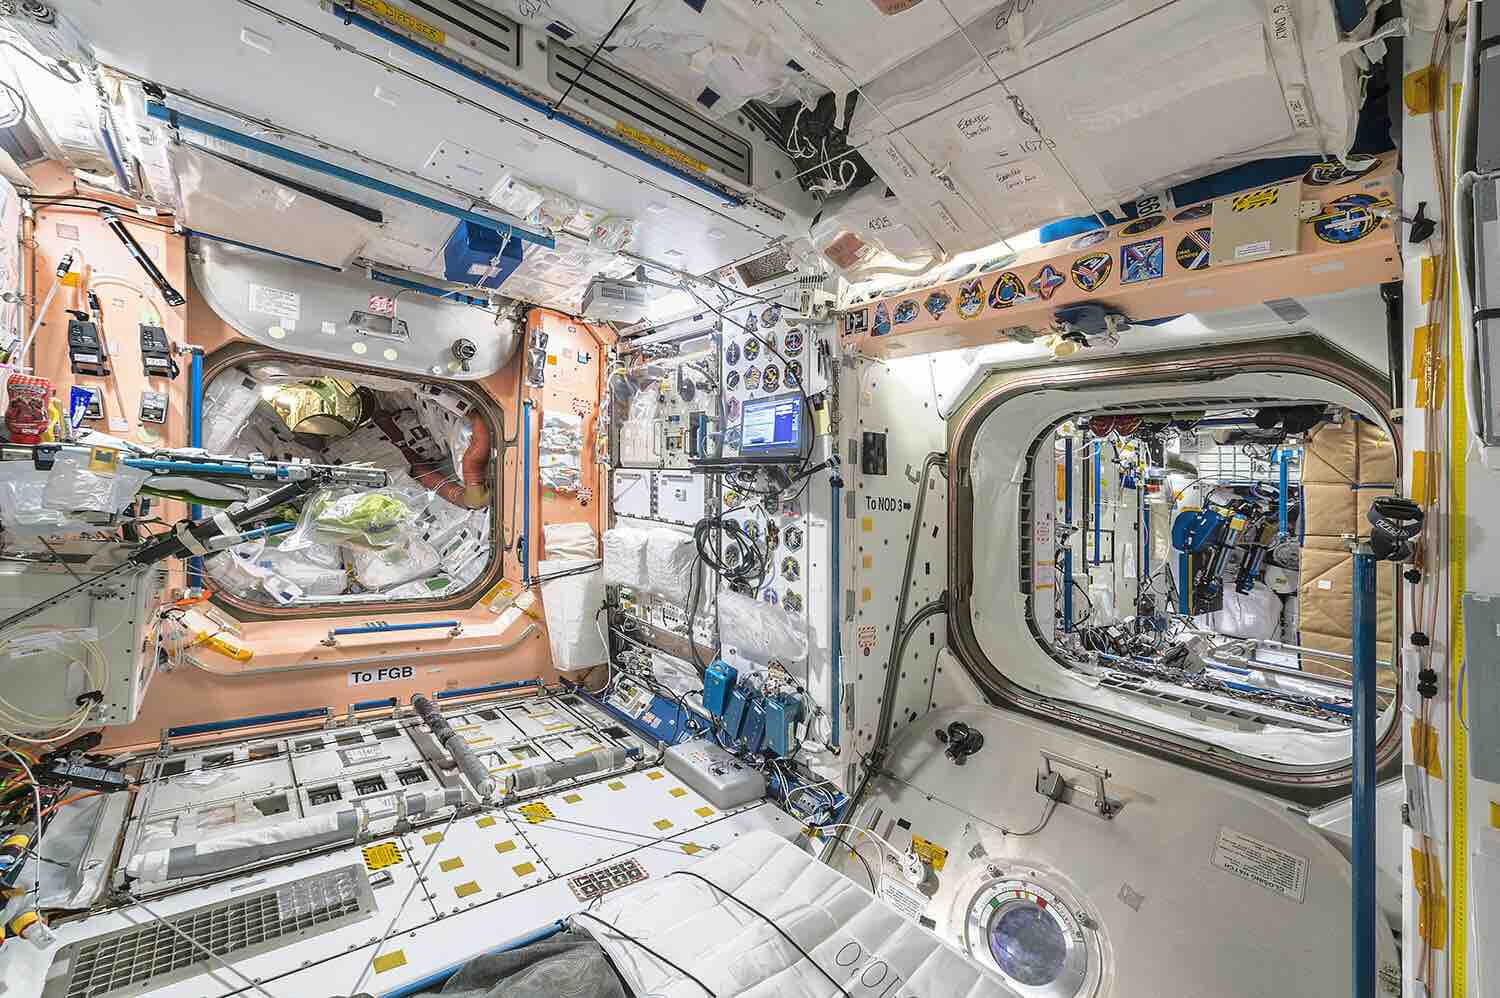 interior-space-by-roland-miller-and-paolo-nespoli-3